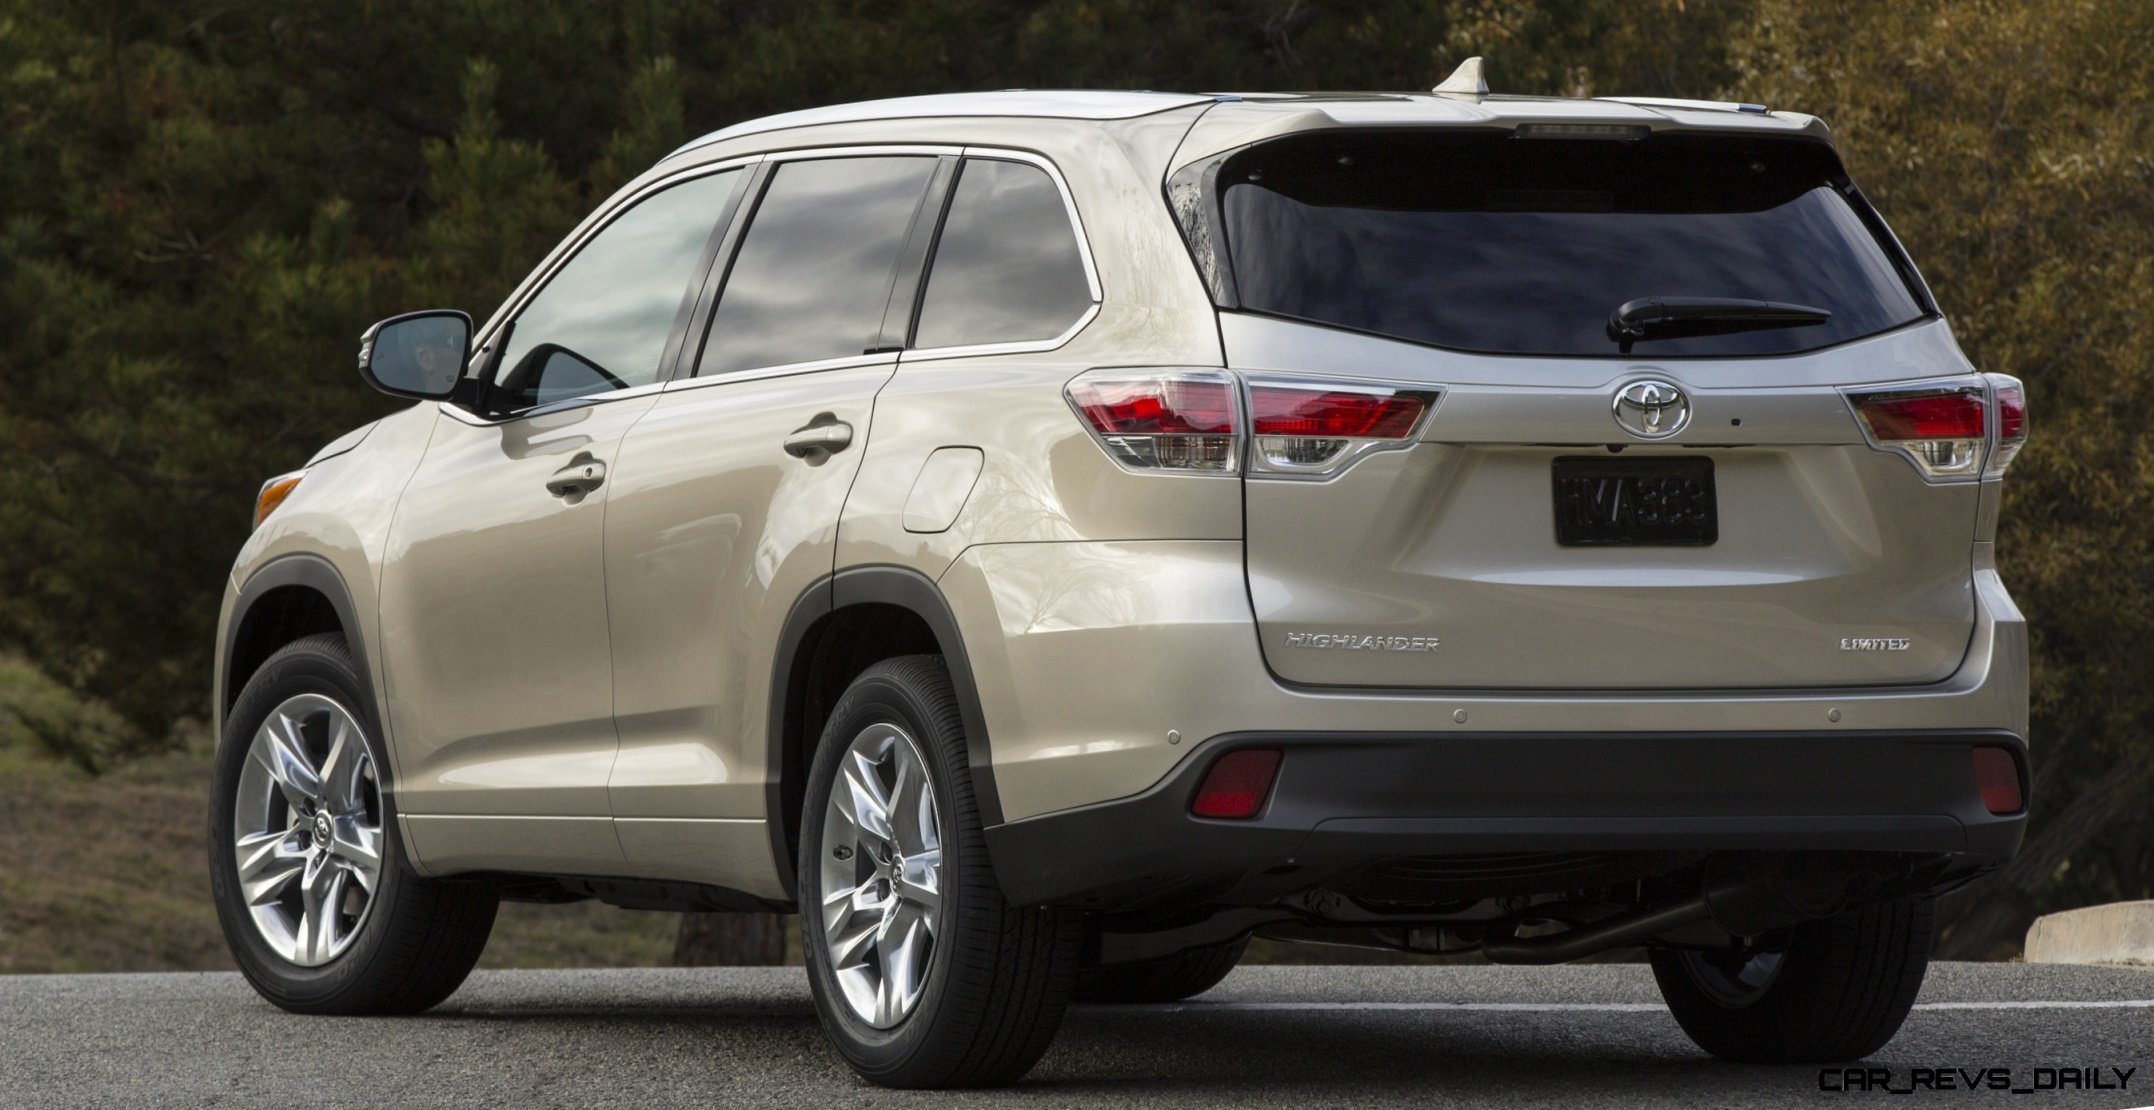 Carrevsdaily 2014 toyota highlander exterior photo40 Toyota highlander 2014 exterior